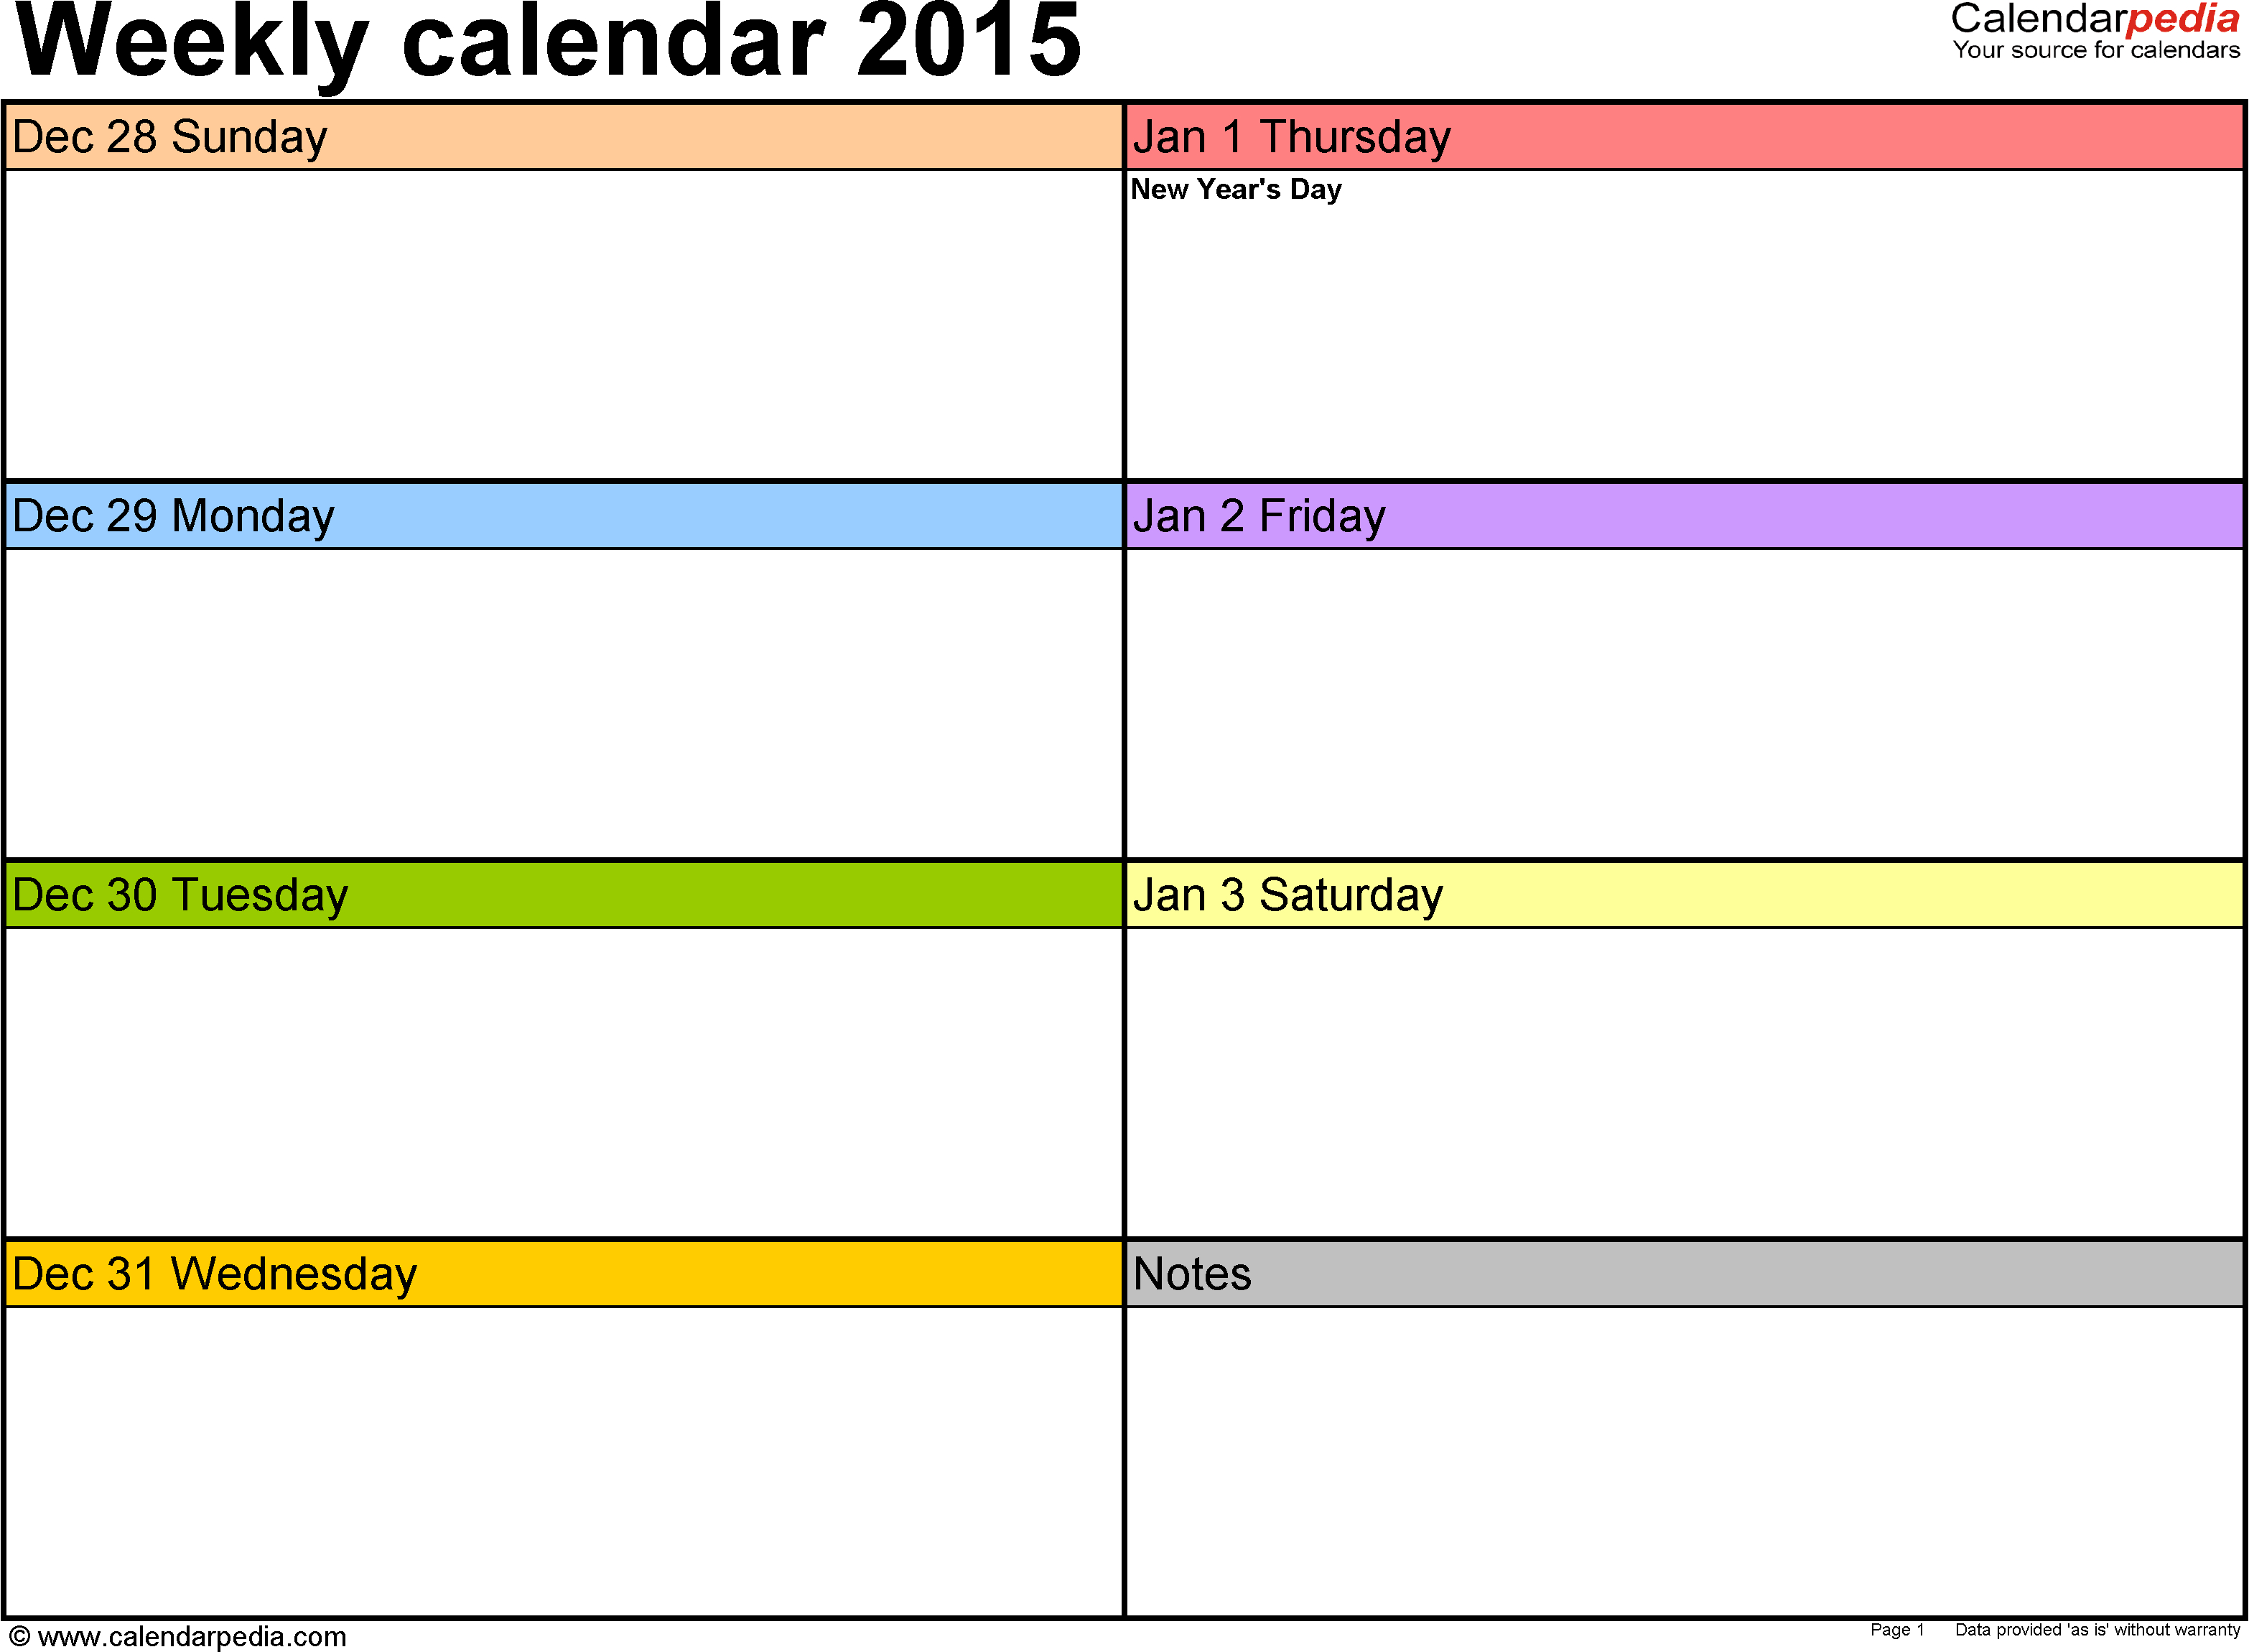 Weekly Calendar 2015 For Pdf - 12 Free Printable Templates for Cute Blank Day Calender Templates